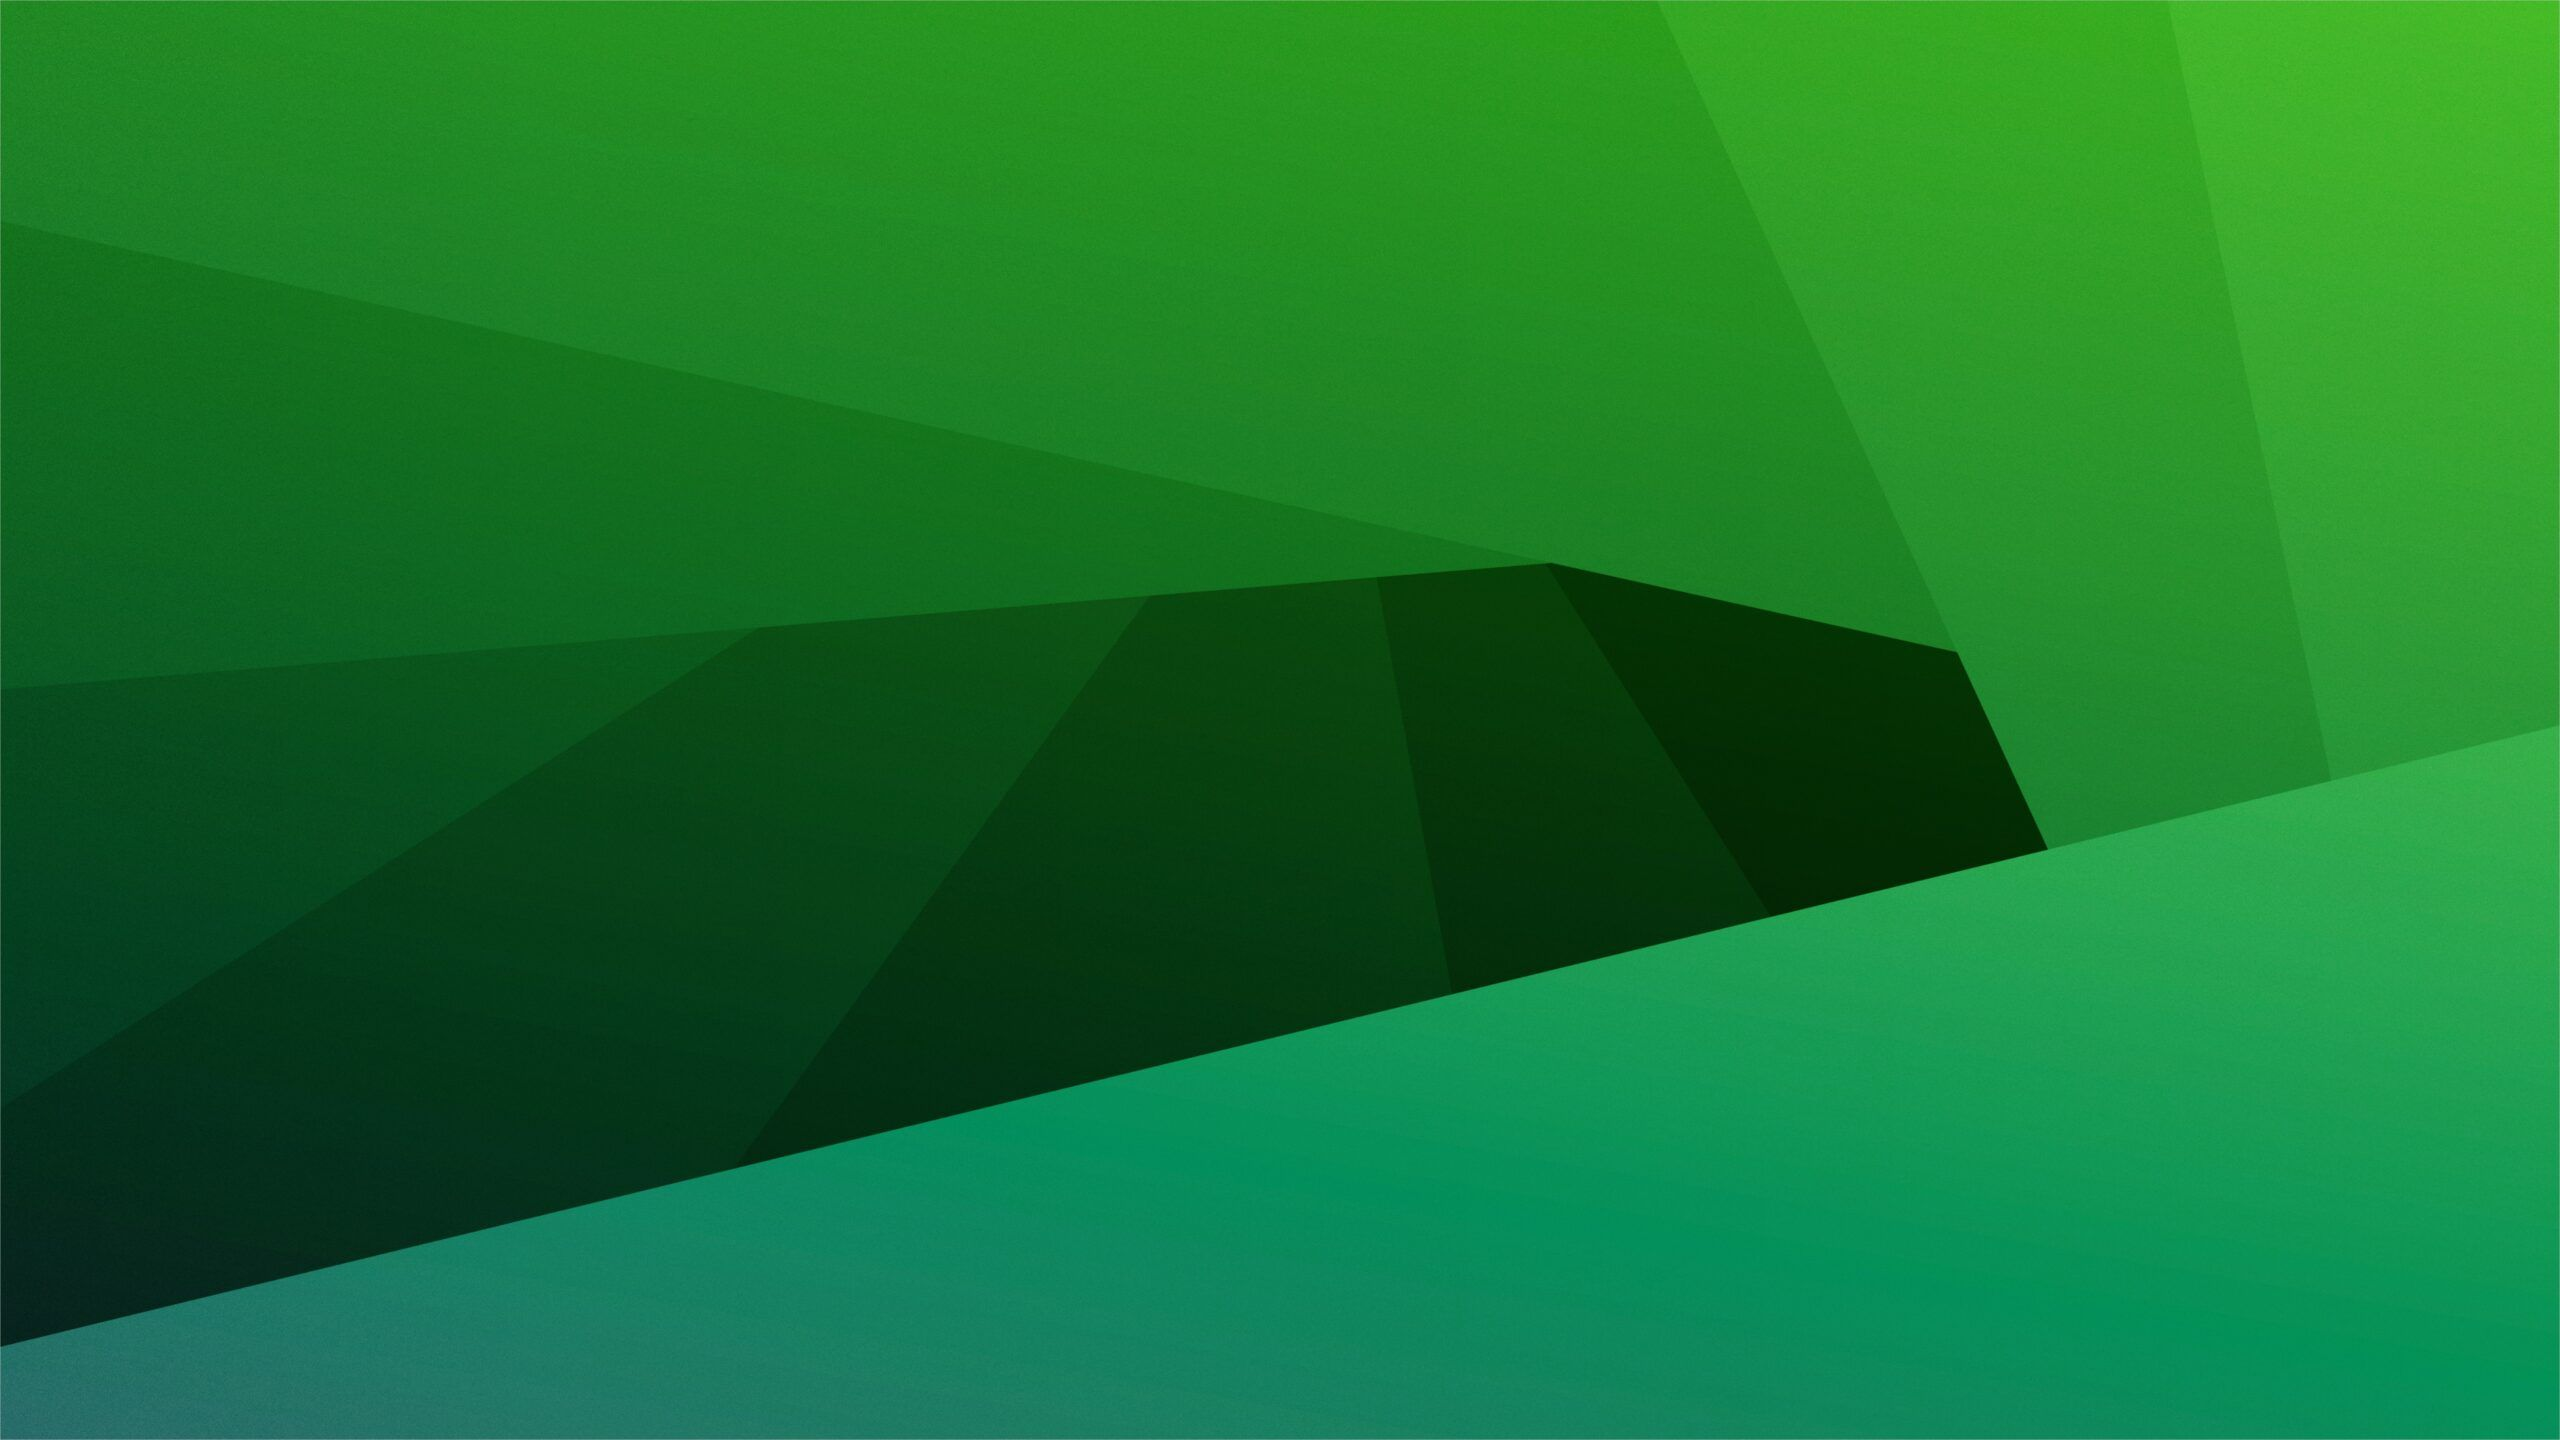 4k Wallpaper Abstract Green In 2020 Abstract Wallpaper Abstract Artwork